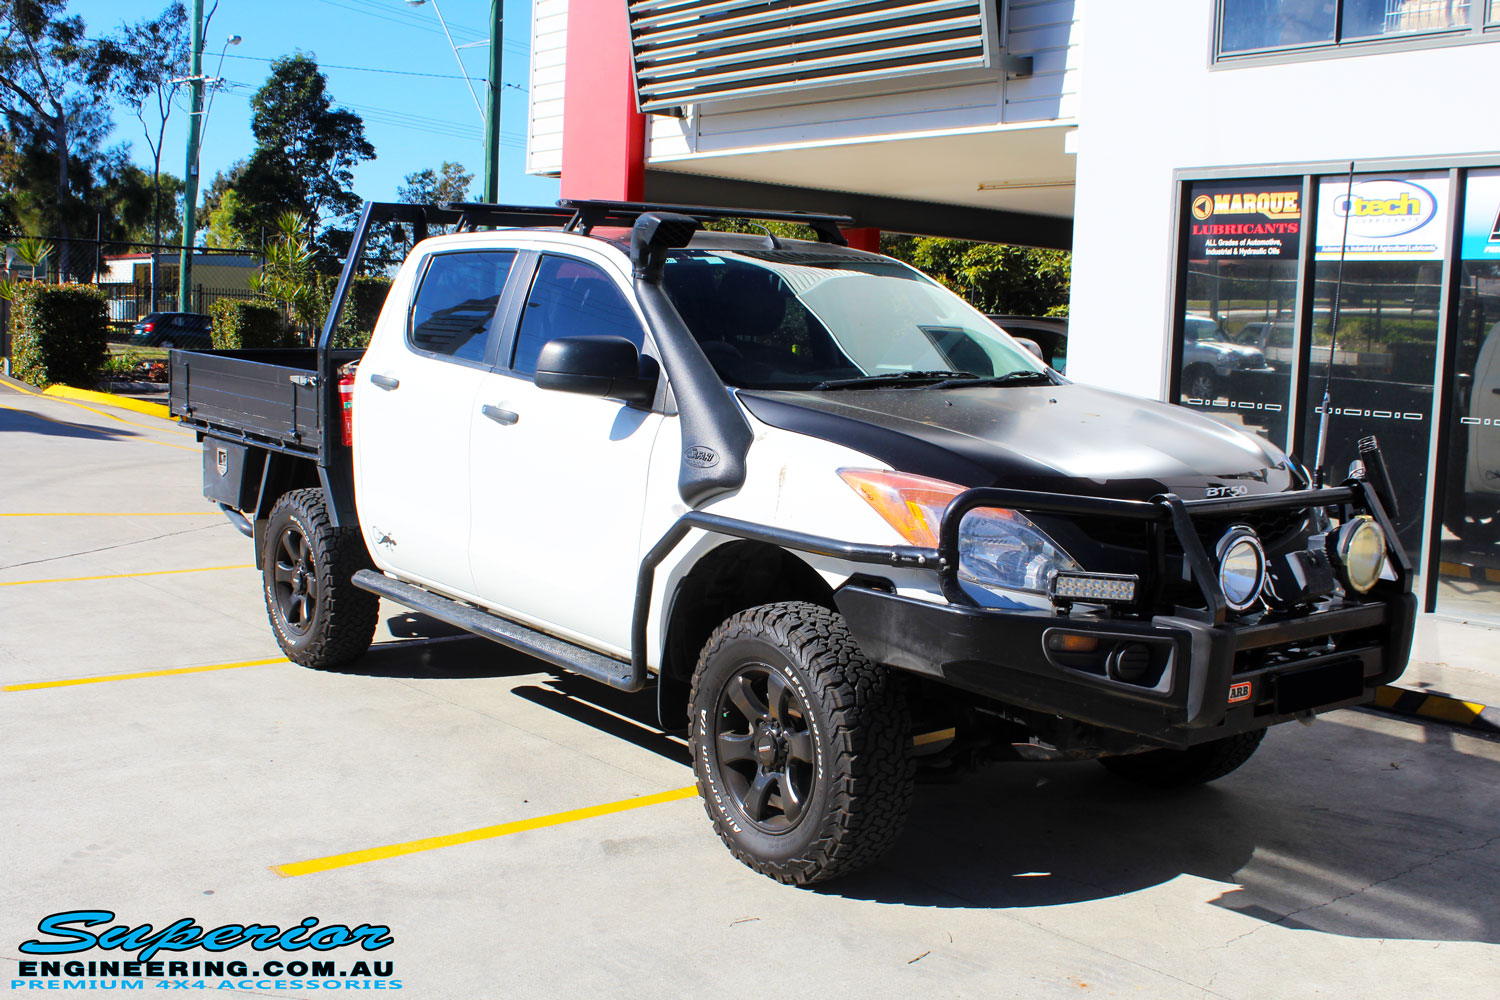 Right front side view of a Mazda BT-50 in White On The Hoist @ Superior Engineering Deception Bay Showroom